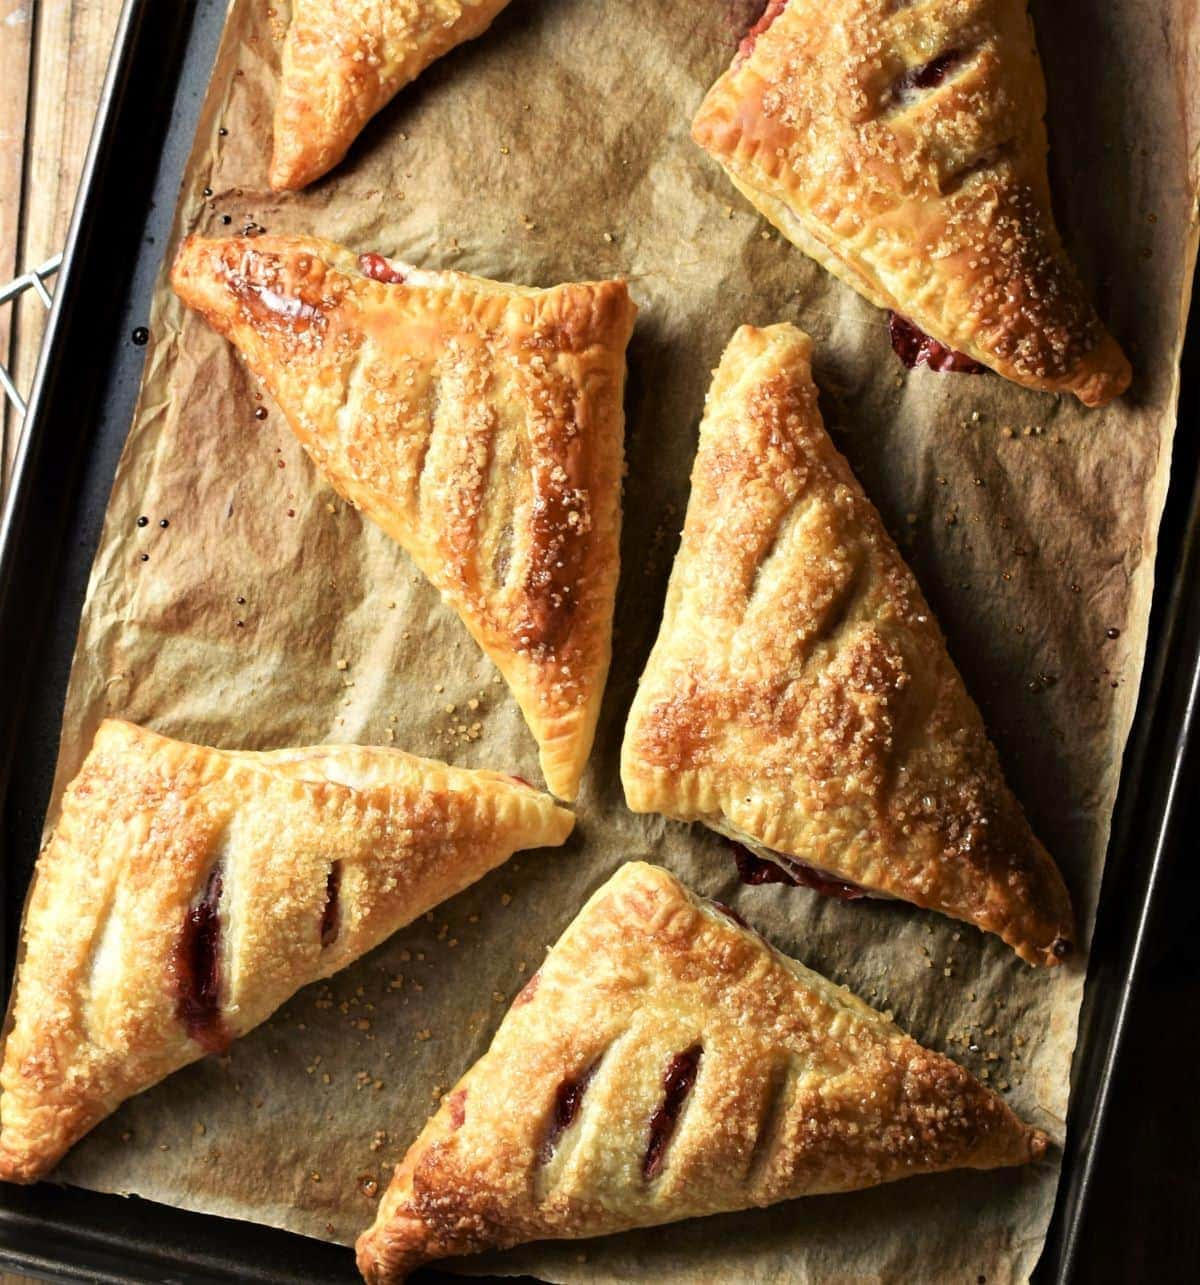 Baked strawberry turnovers on top of baking sheet lined with parchment.